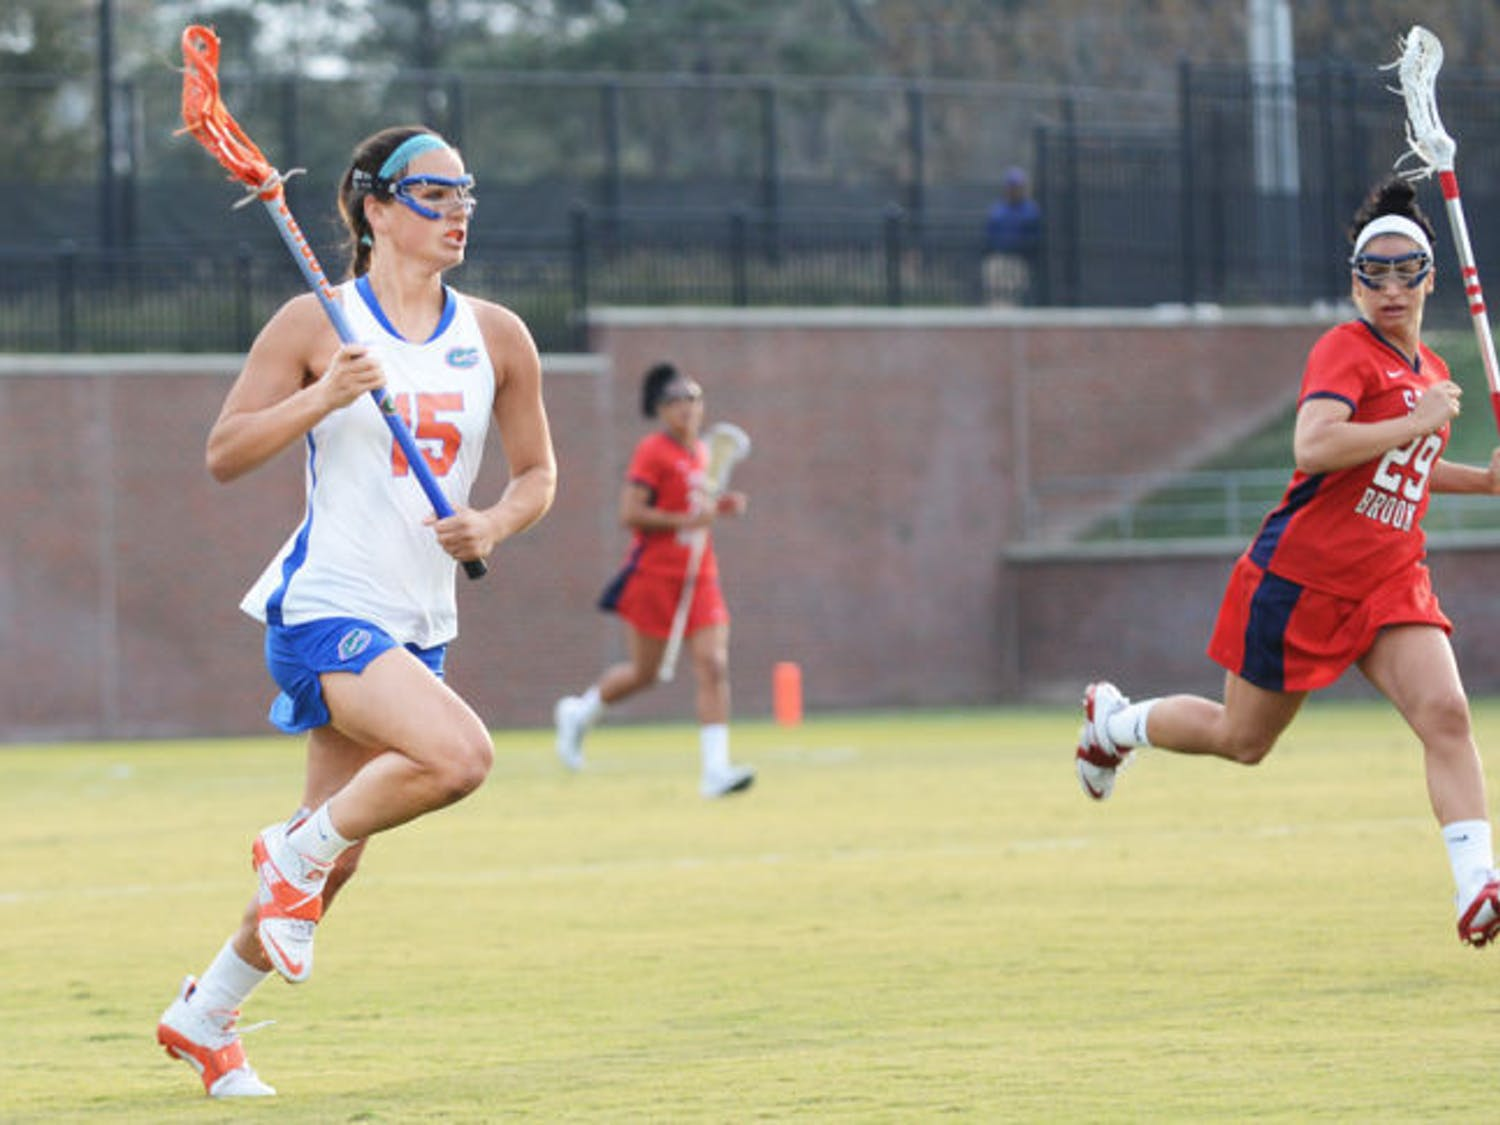 Senior Sam Farrell runs down the field during Florida's 16-9 win against Stony Brook on Feb. 20 at Dizney Stadium. UF will clinch the American Lacrosse Conference championship outright win a win against Northwestern on Saturday and a Penn State loss.